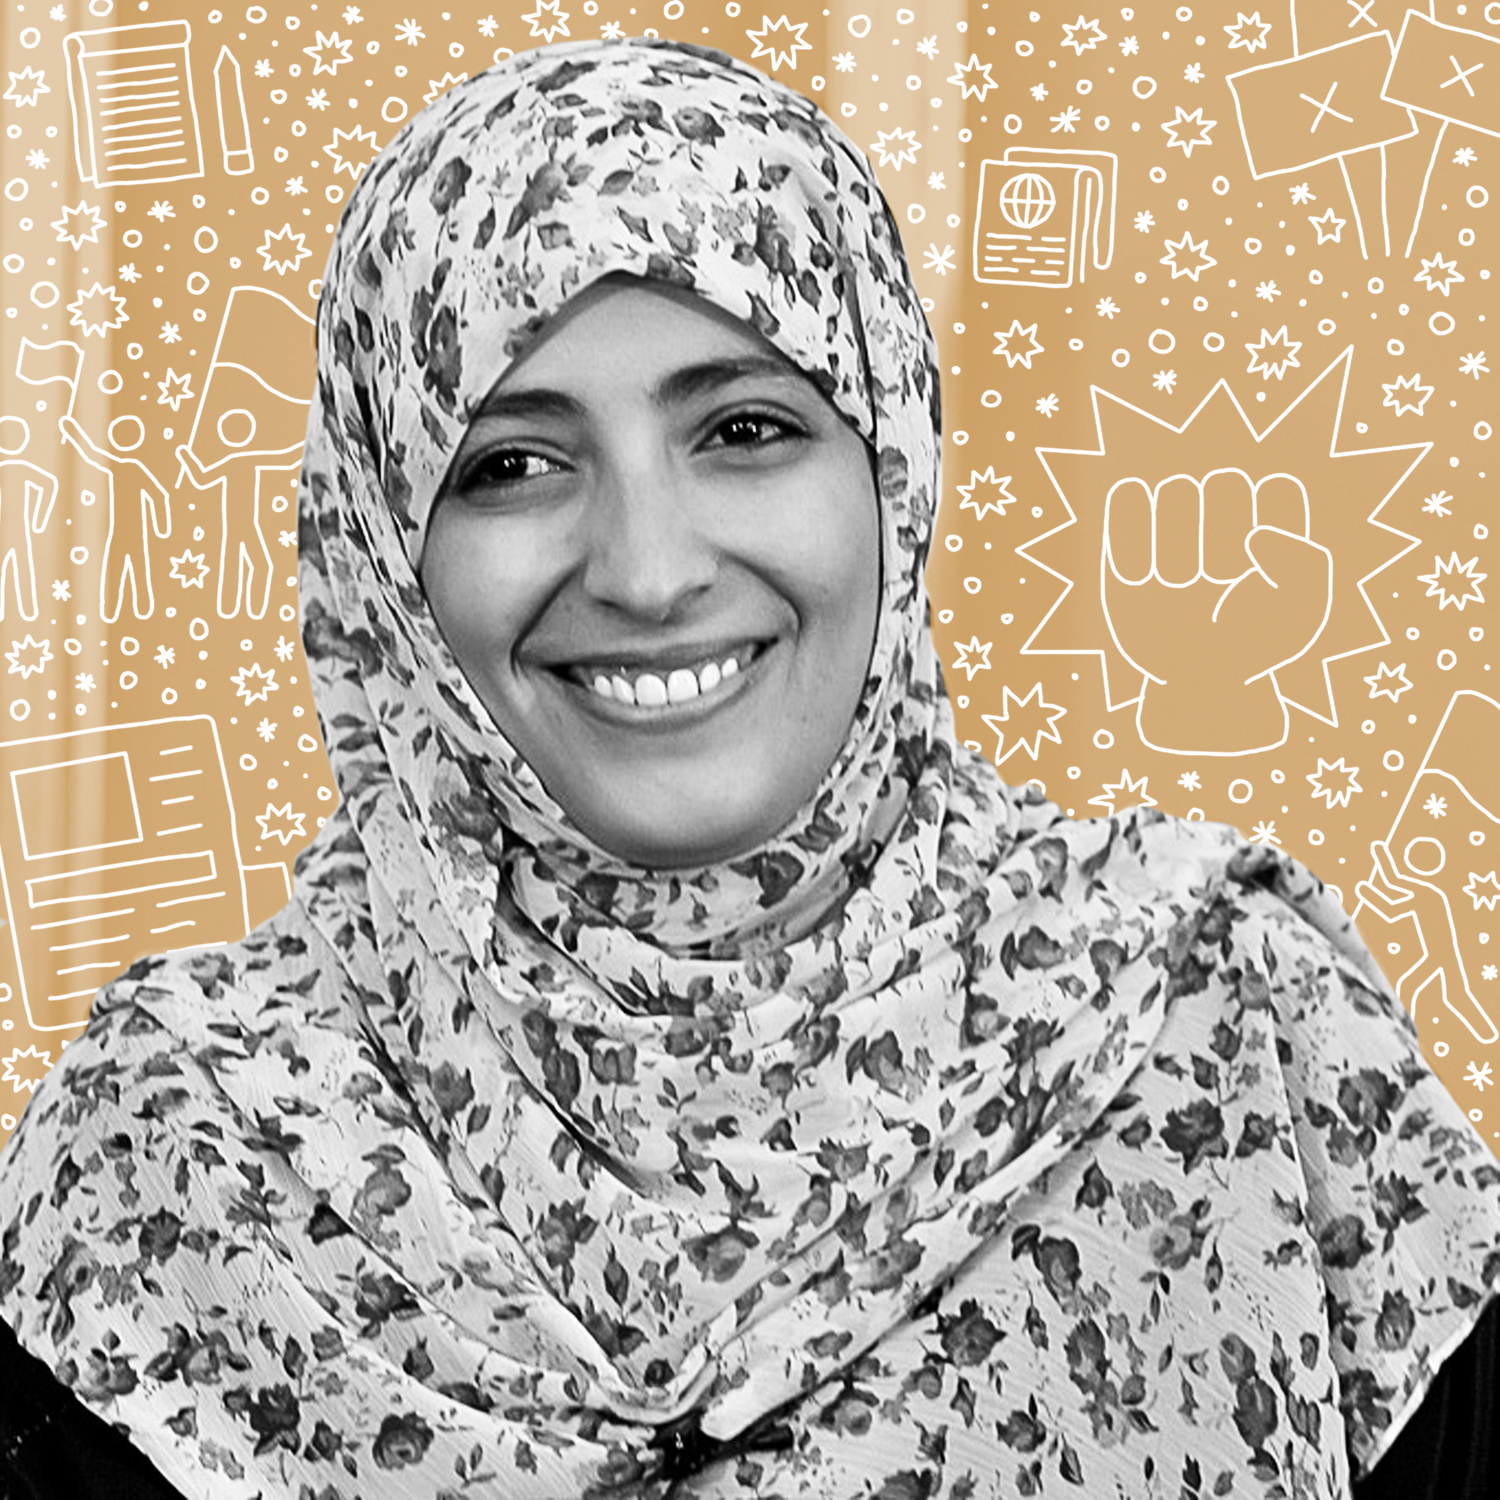 """Tawakkol Abdel-Salam Karman    Called the """"Iron Woman"""" and """"Mother of the Revolution,"""" Karman is a Yemeni journalist, politician, and human rights activist. She became the international public face of the 2011 Yemeni uprising that is part of the Arab Spring uprisings. She is a co-recipient of the 2011 Nobel Peace Prize, becoming the first Yemeni, the first Arab woman, and the second Muslim woman to win a Nobel Prize and the second youngest Nobel Peace Laureate to date."""